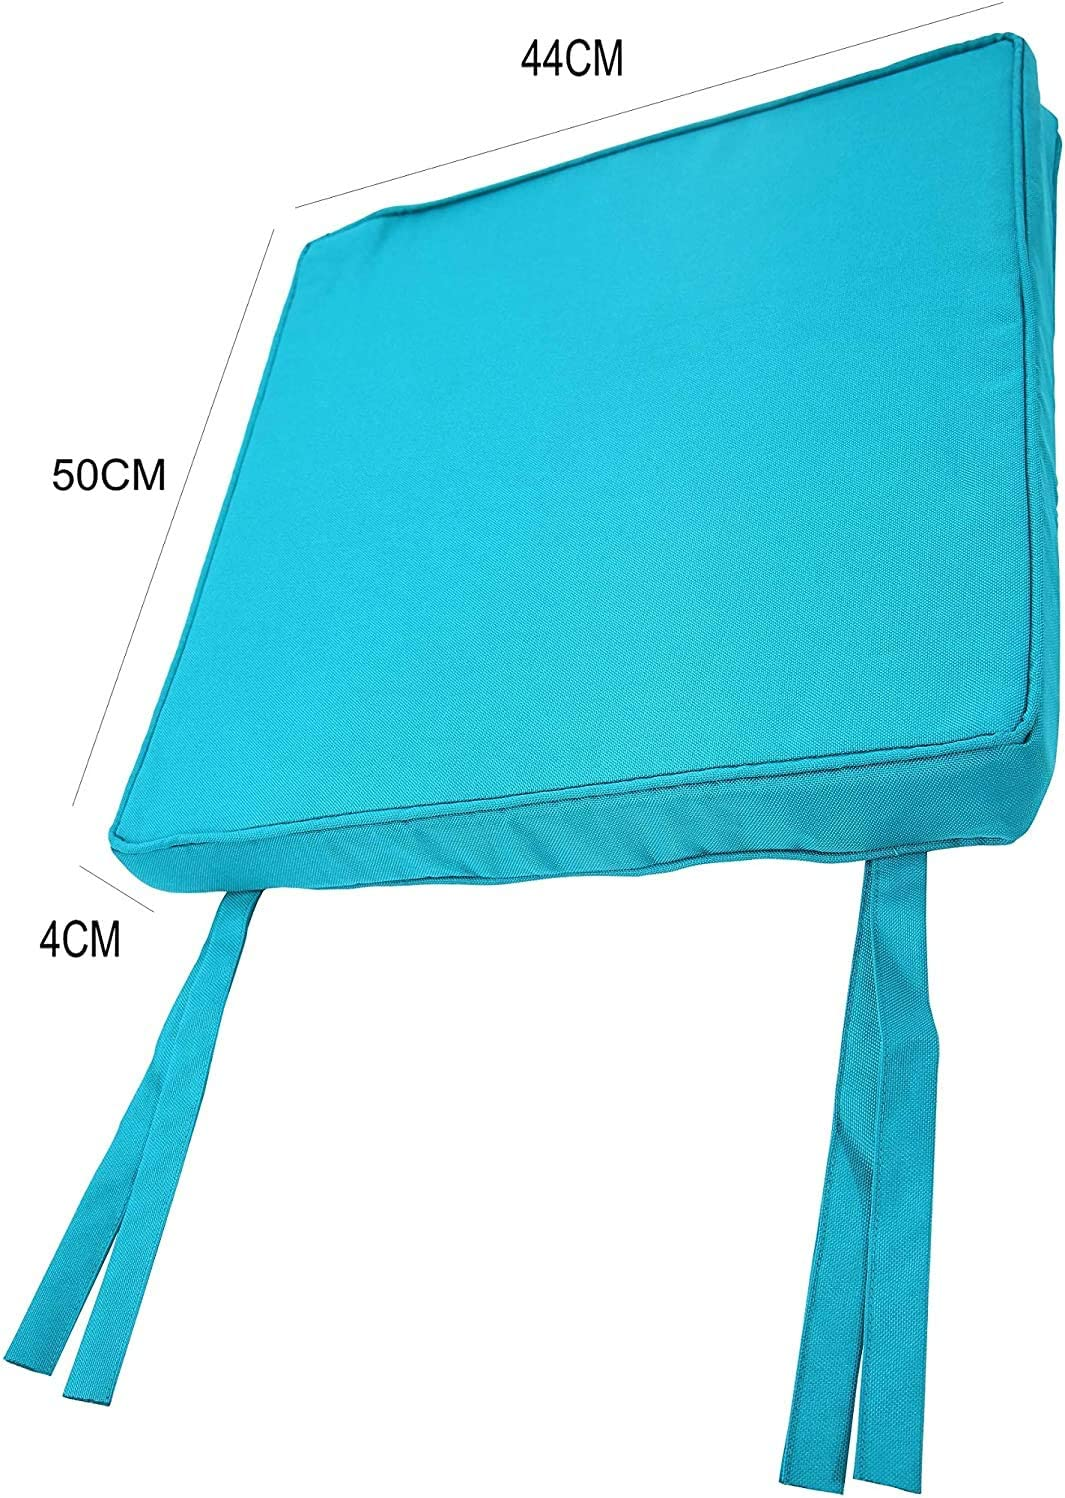 Black, 40 x 40 cm BEDWAY Waterproof Outdoor Chair Seat Pad with Tie-on Straps Water Resistant Breathable Fabric For Any Garden Bench Patio Chair